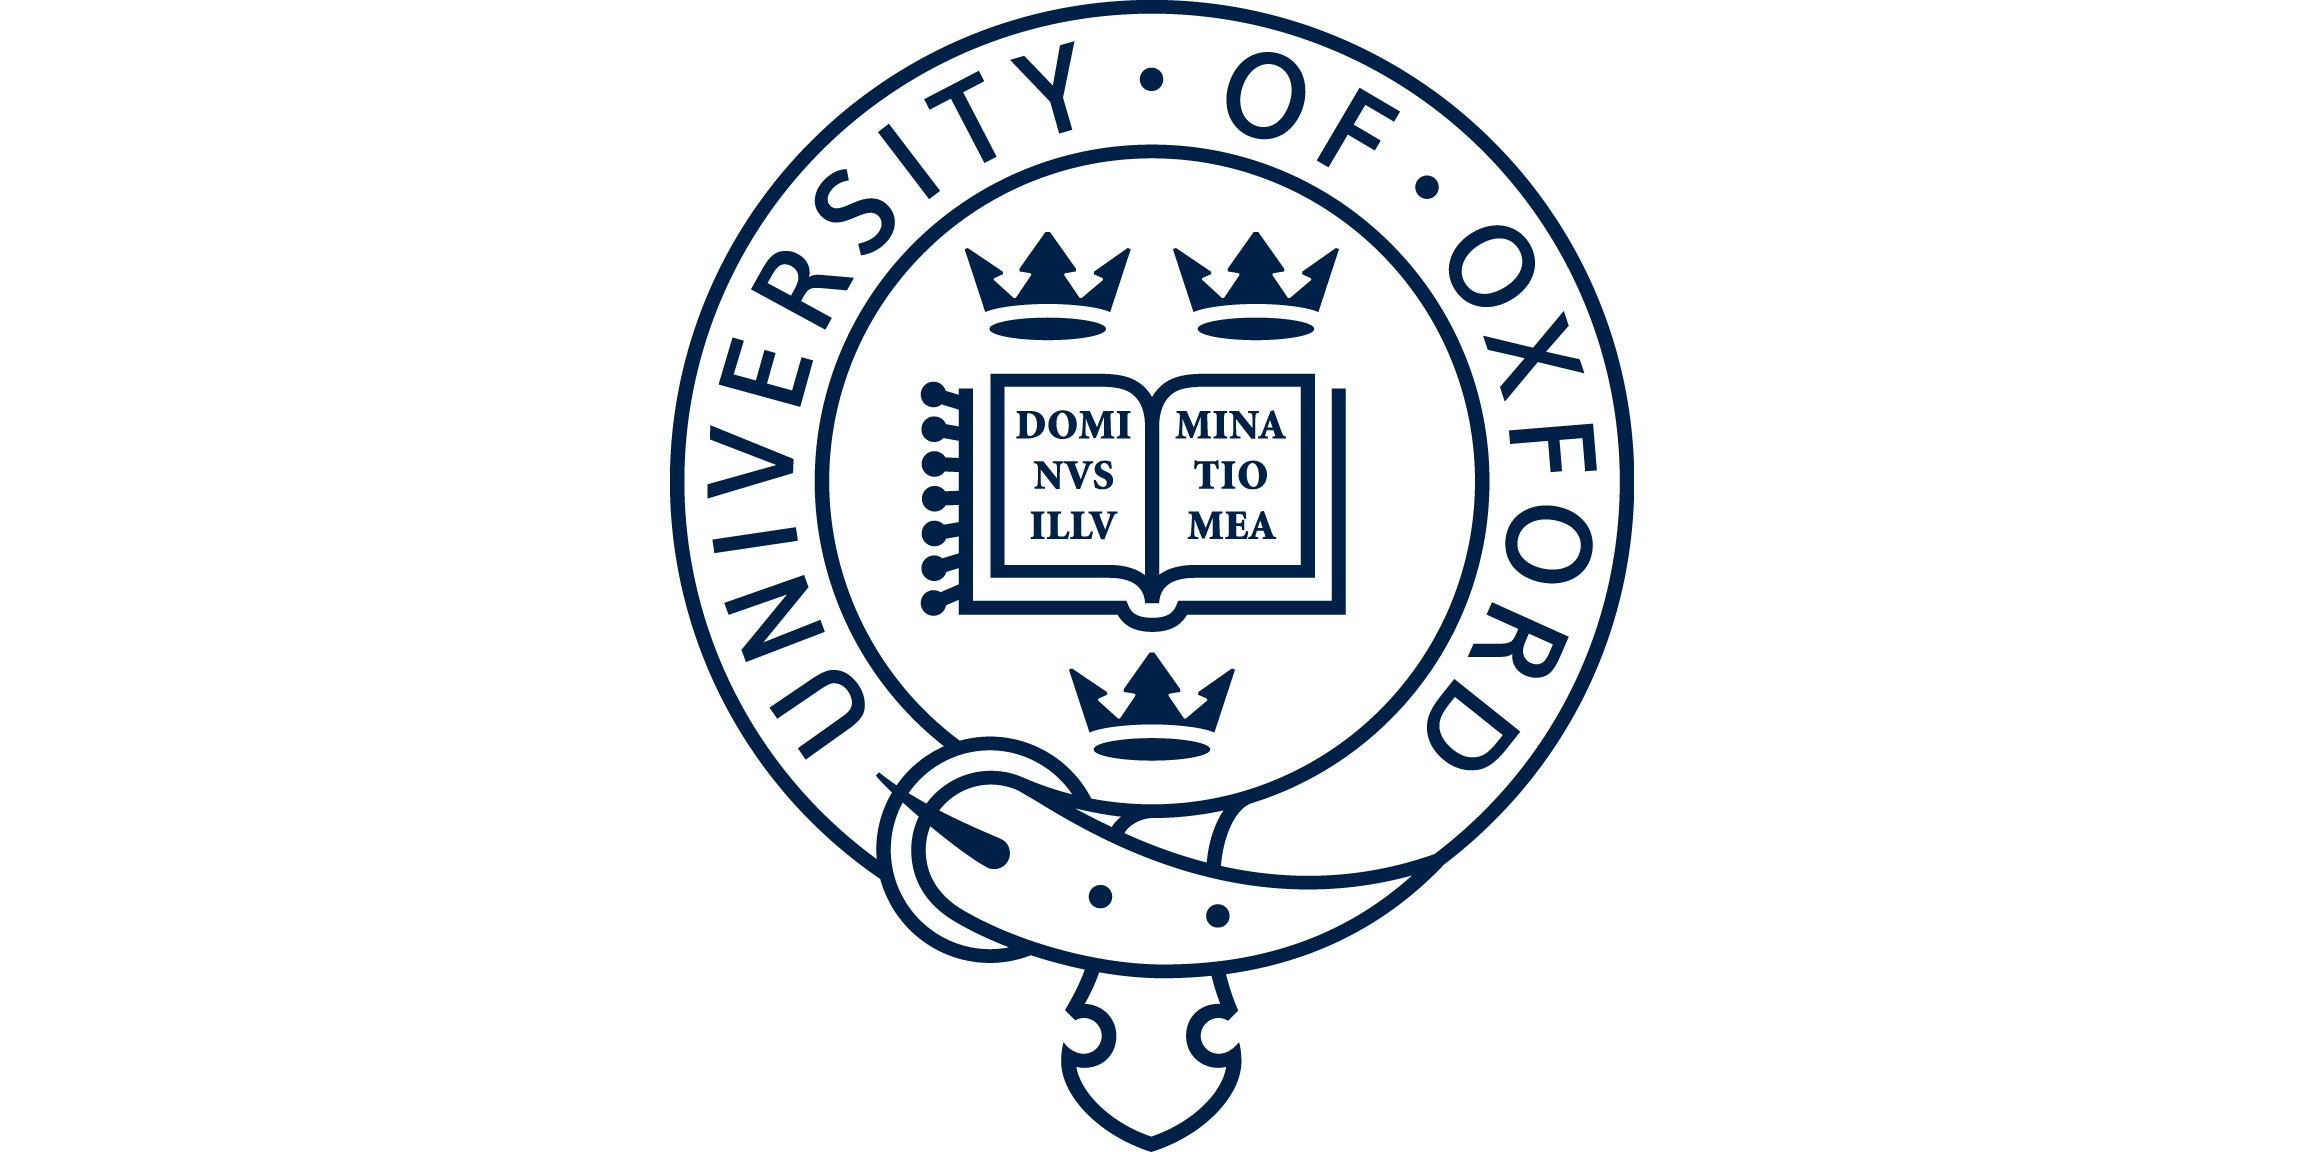 Oxford University - wide.jpg